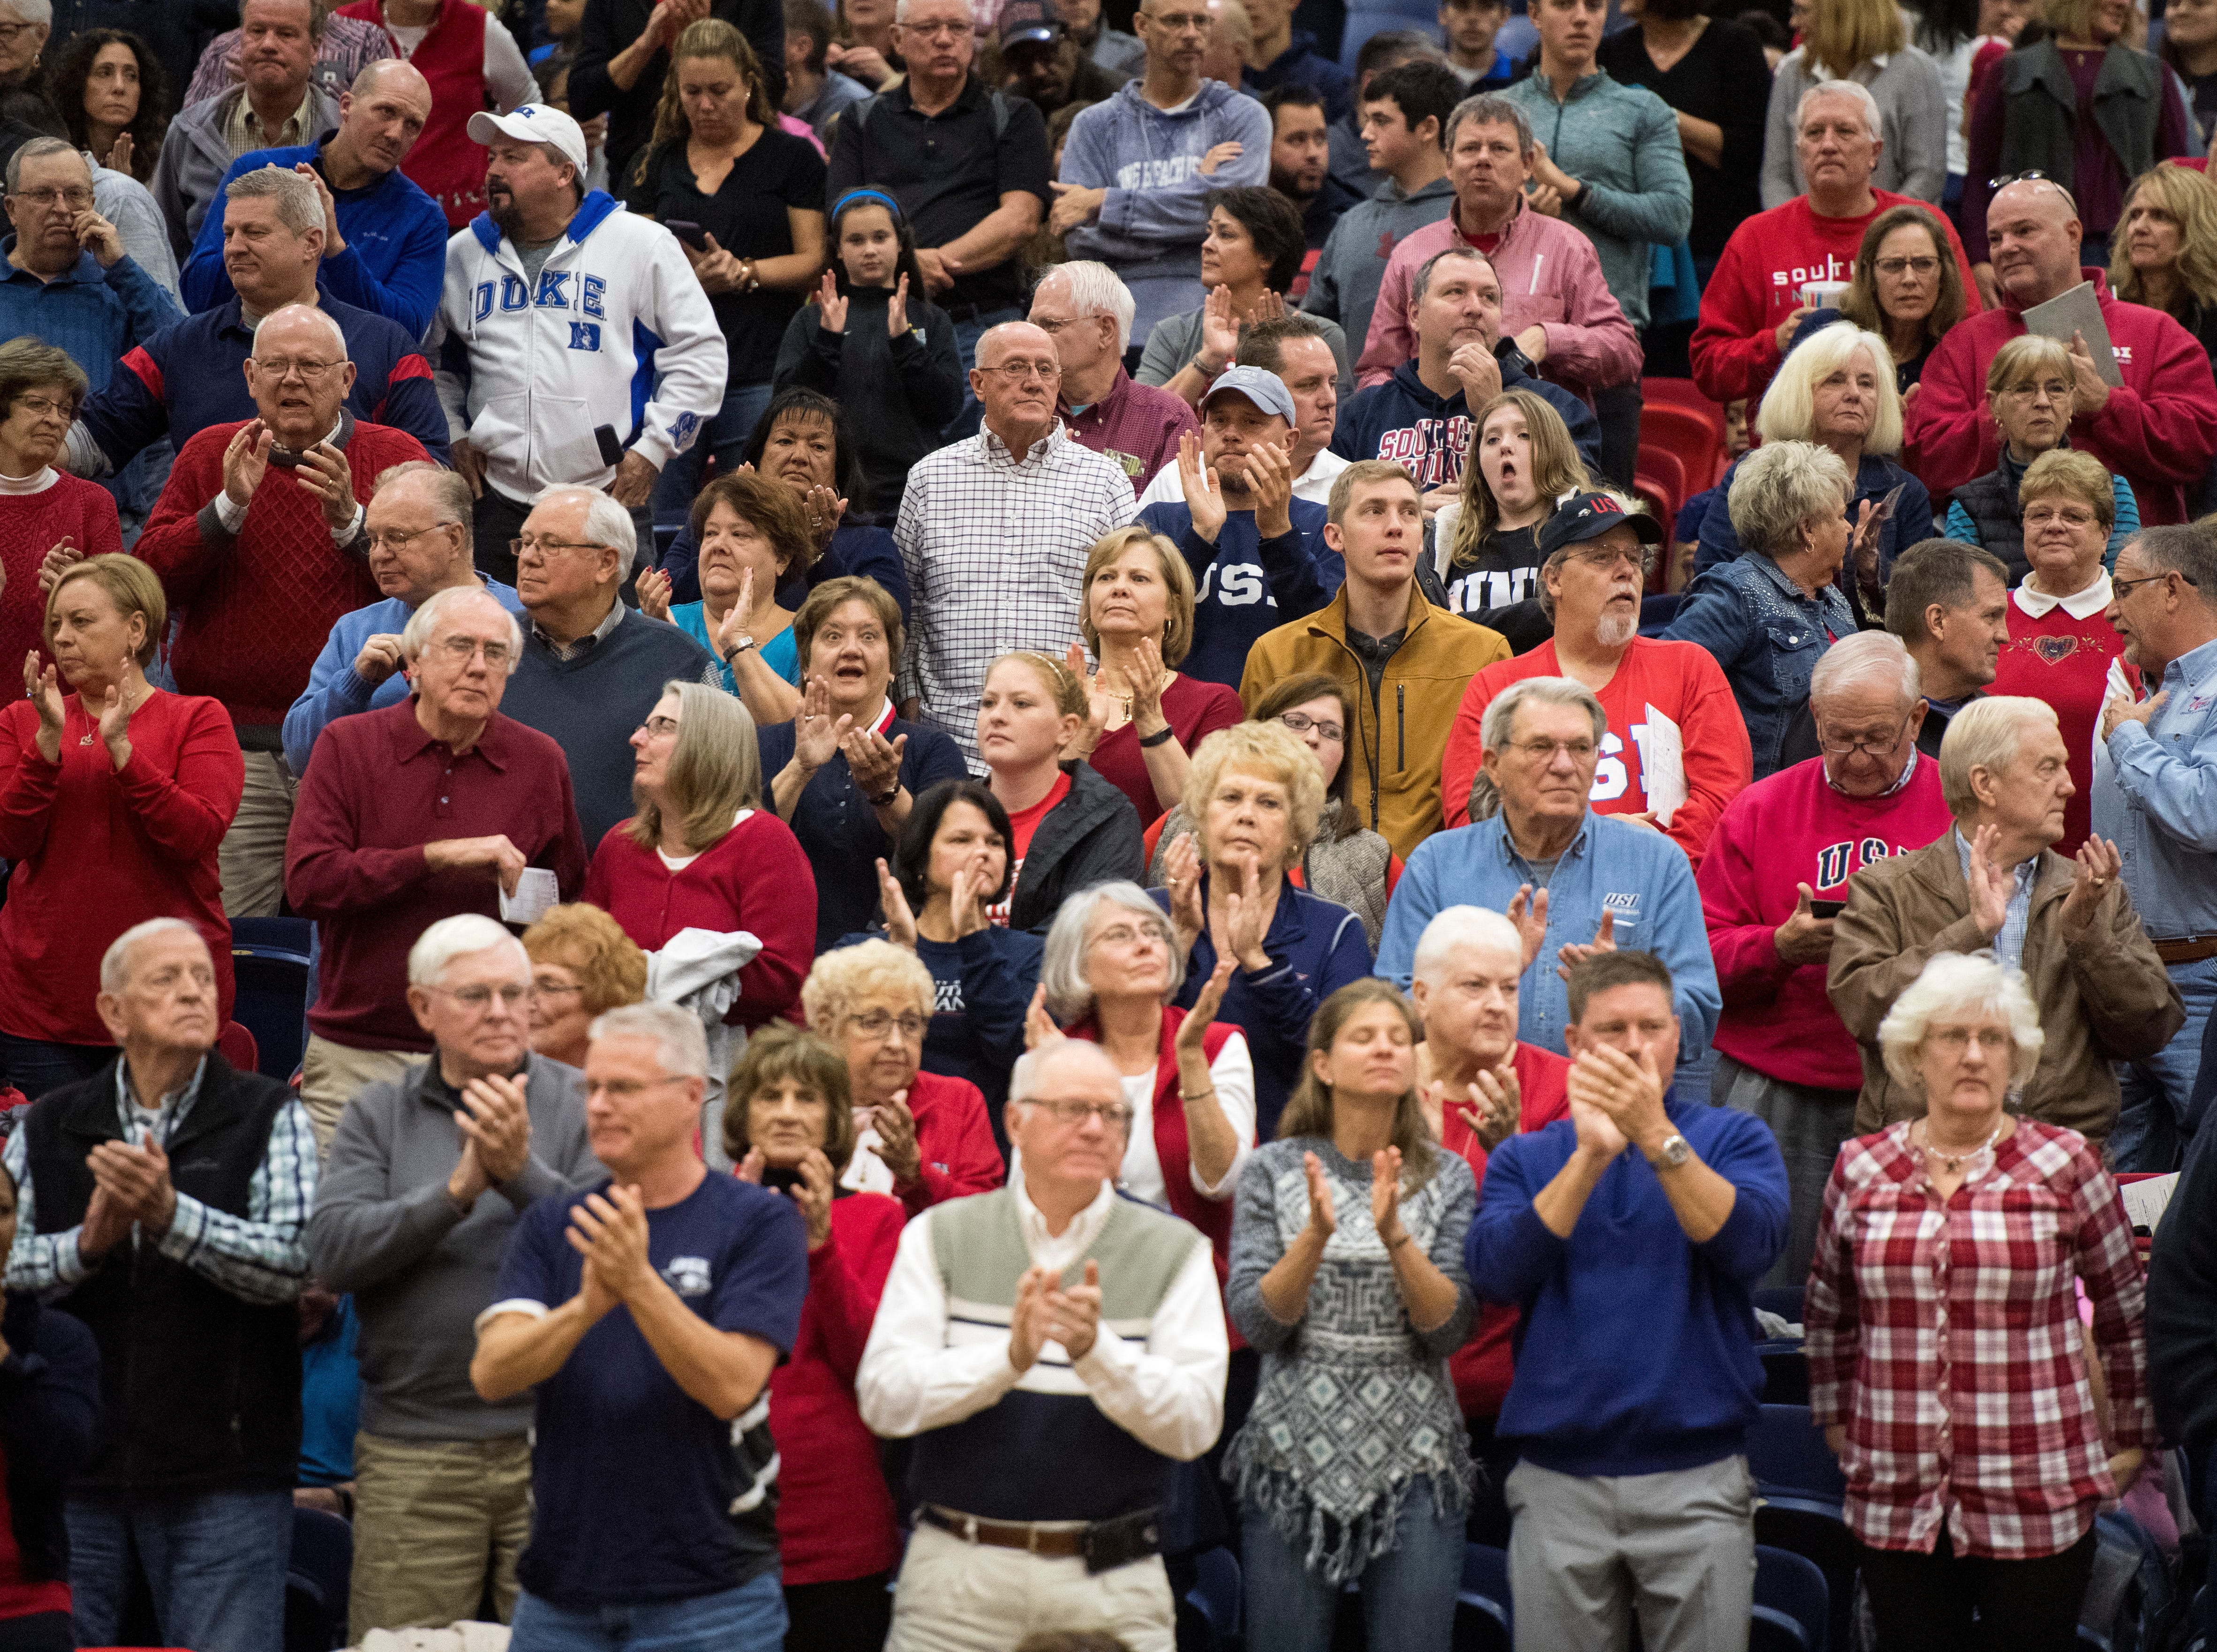 The stands were packed with fans at the PAC on the campus of the University of Southern Indiana during the USI vs Bellarmine basketball game Saturday, Dec. 1, 2018.